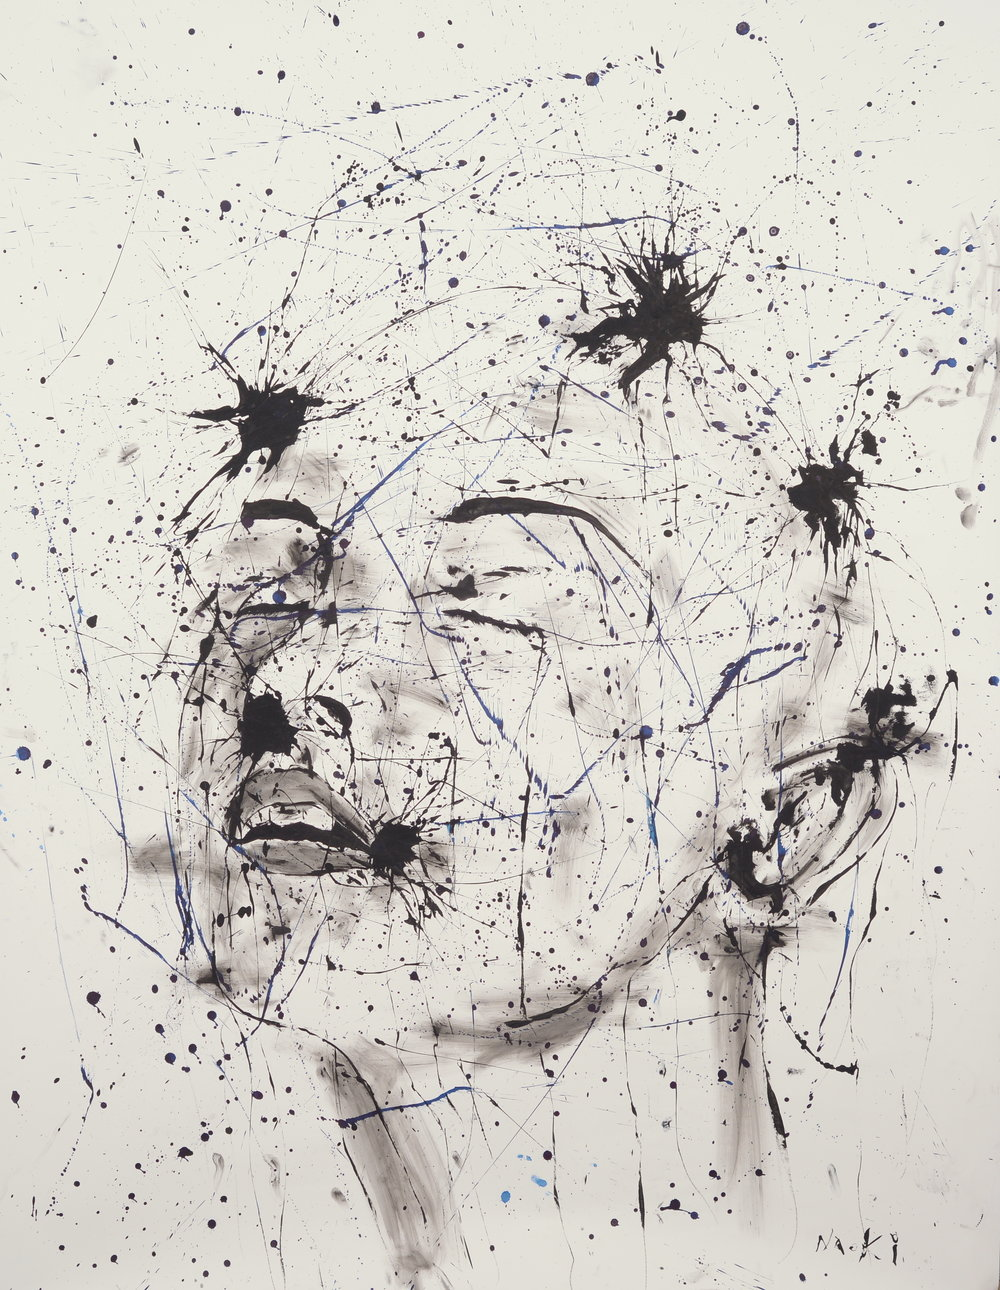 Naoki Fuku, Study of the Human Mind - Calm. ink on Paper, 100 x 210cm 2016